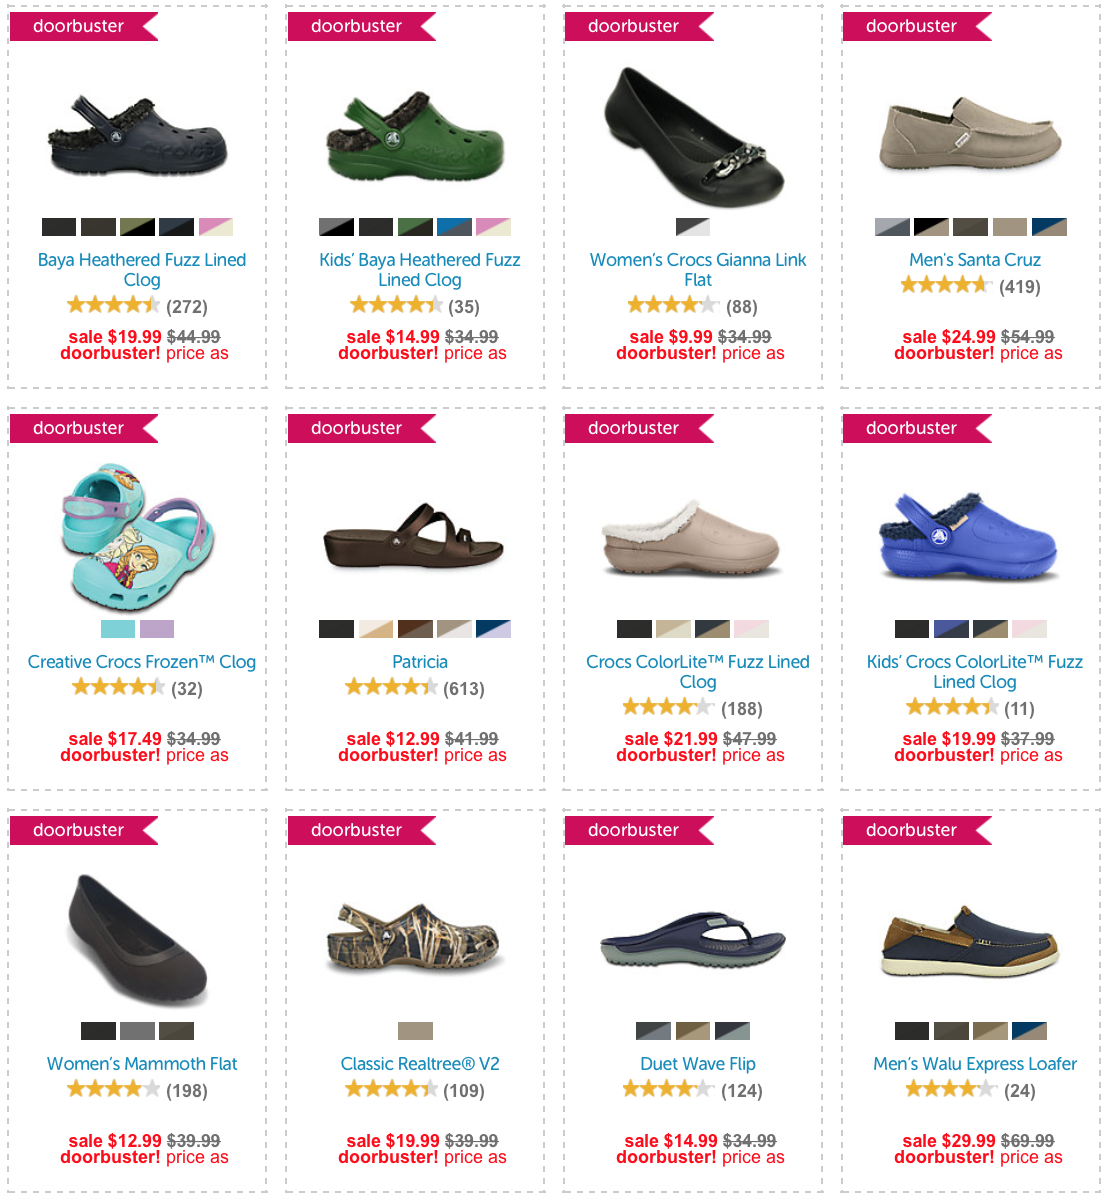 Crocs Black Friday 2020 Sale - What to